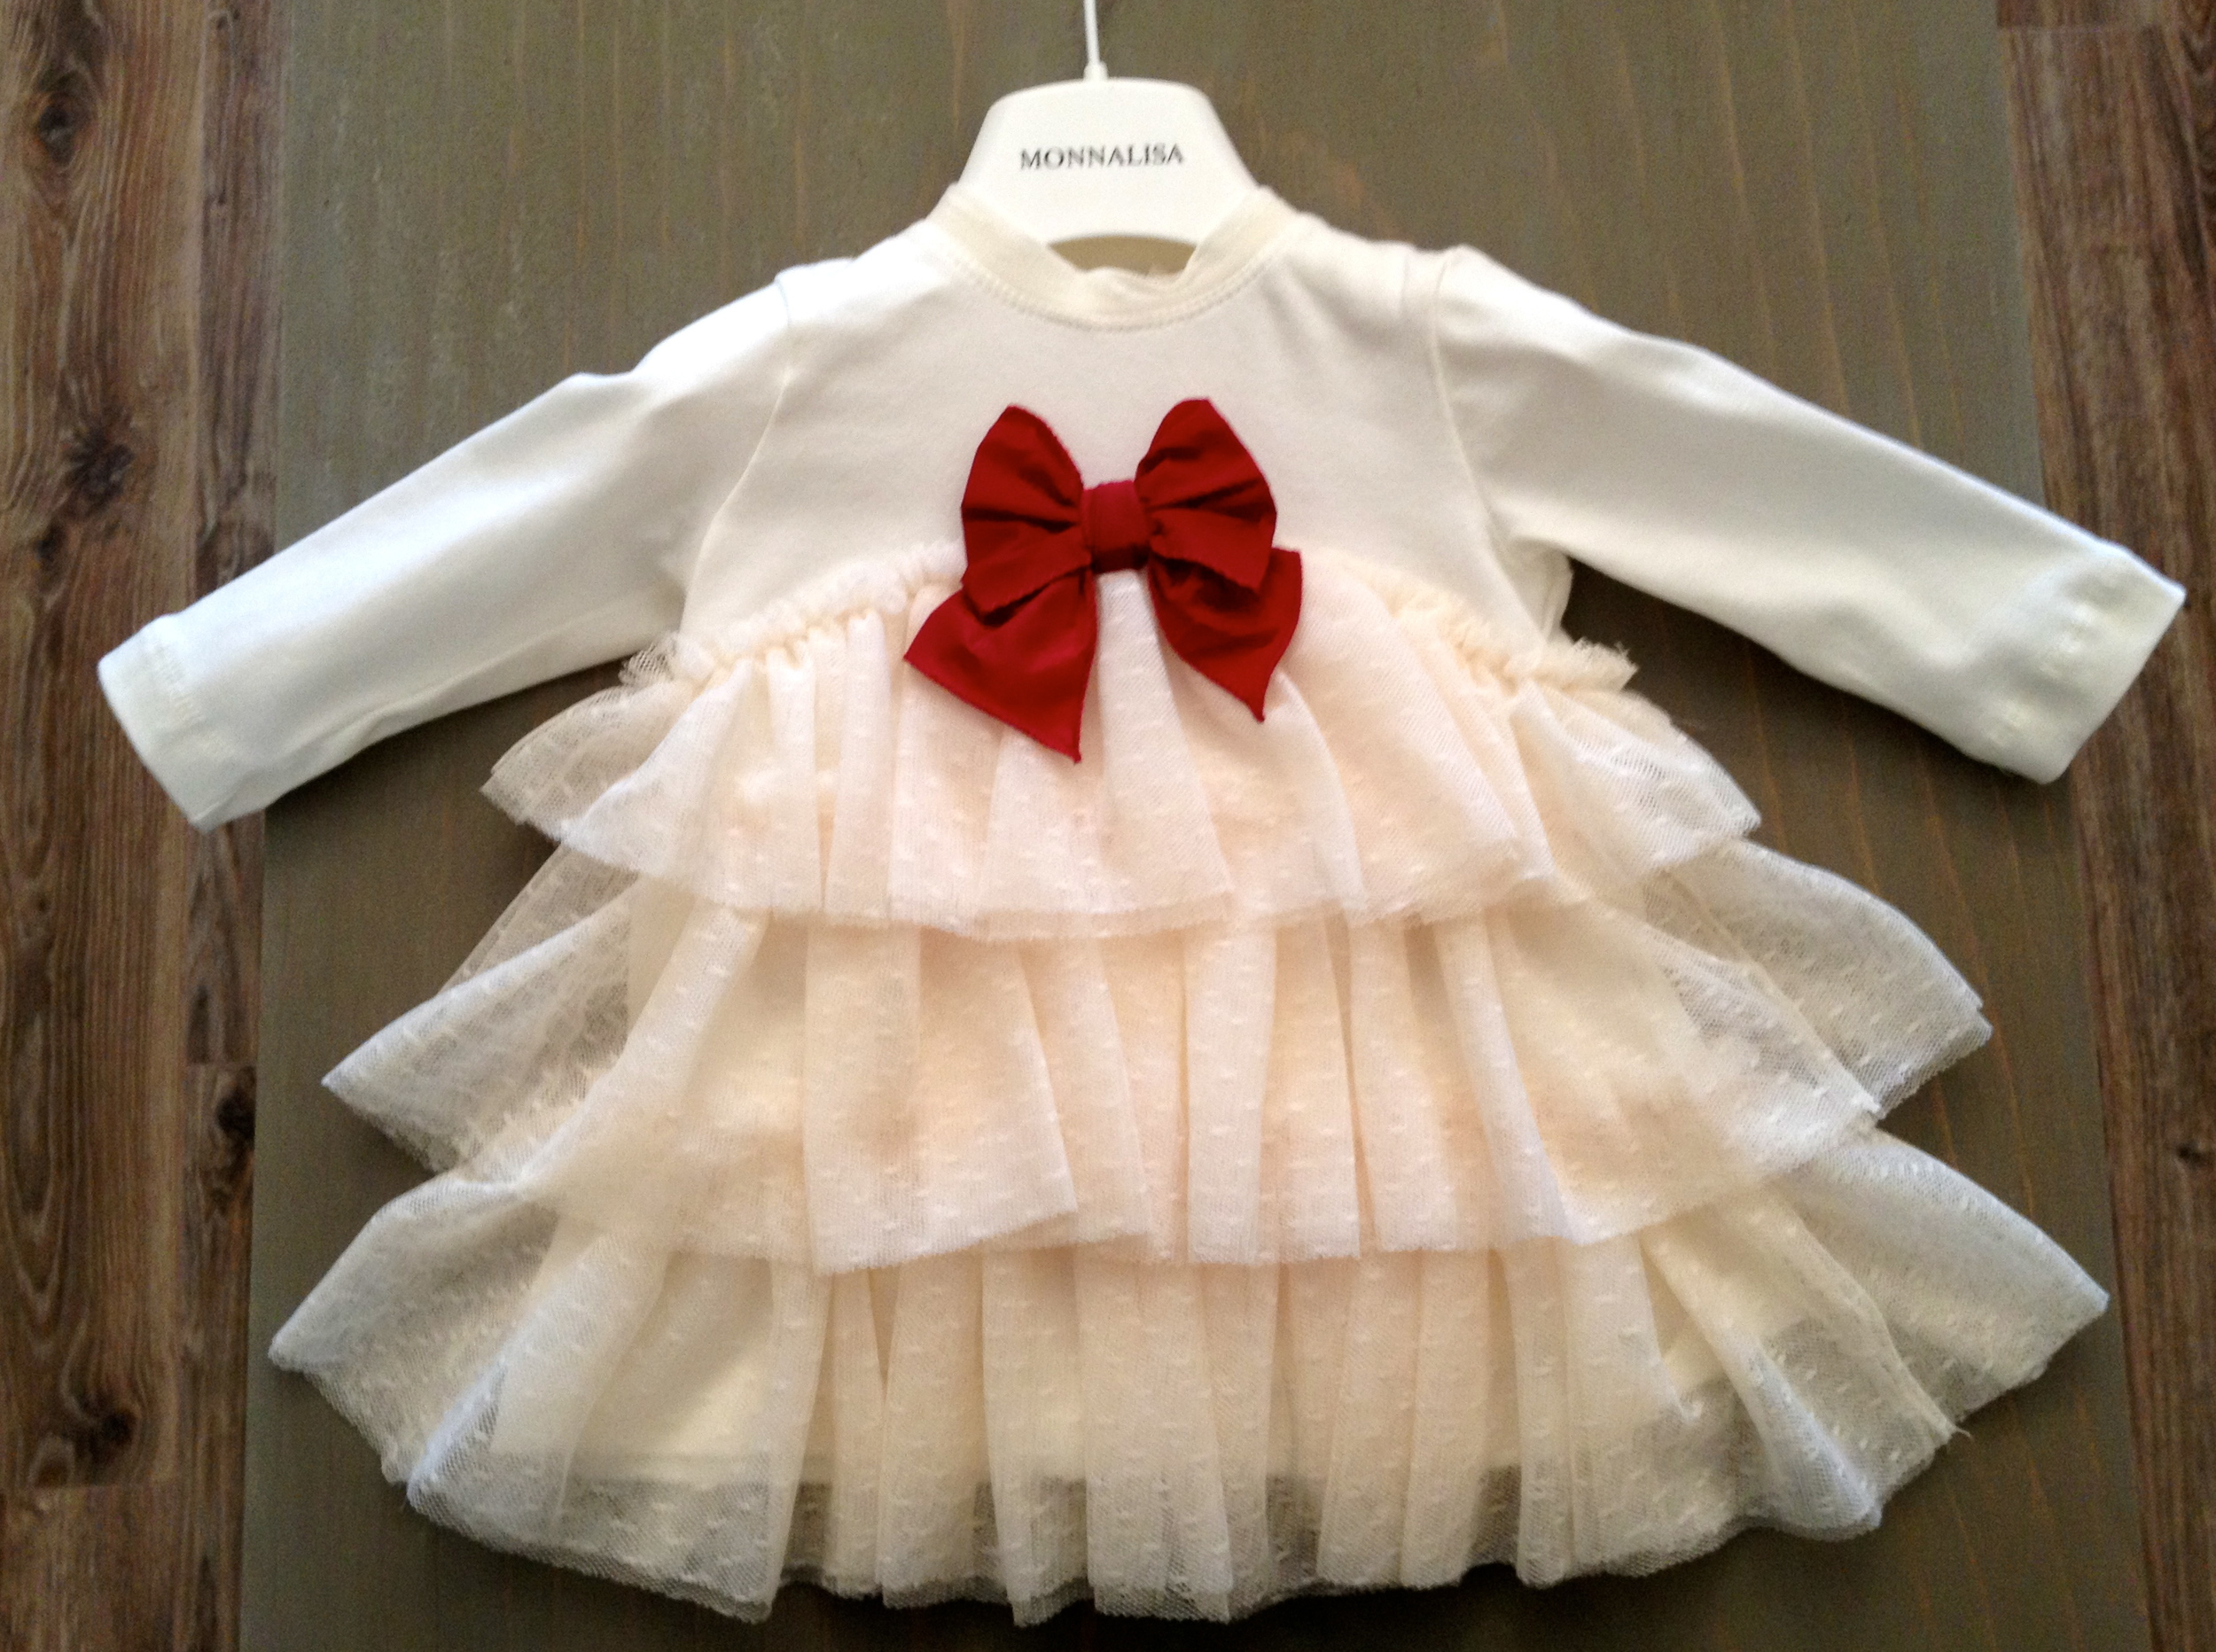 Available sizes: 6M 12M 18M